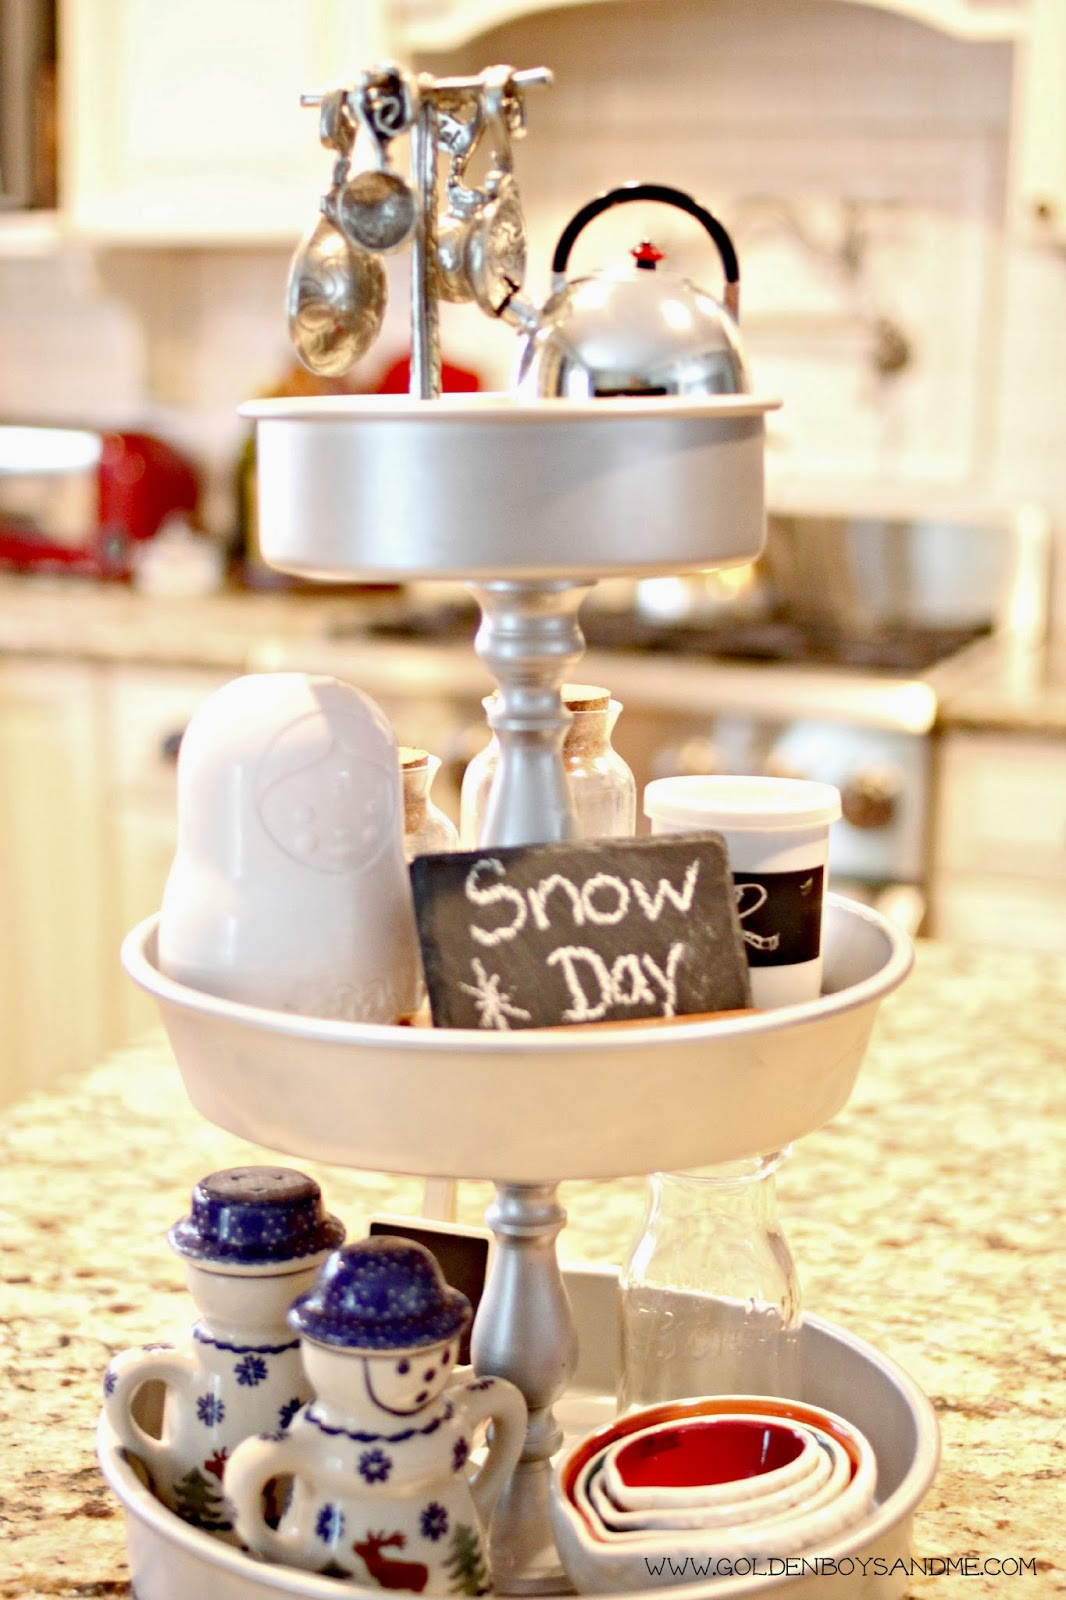 diy 3 tiered kitchen tray with pewter measuring spoons | www.goldenboysandme.com